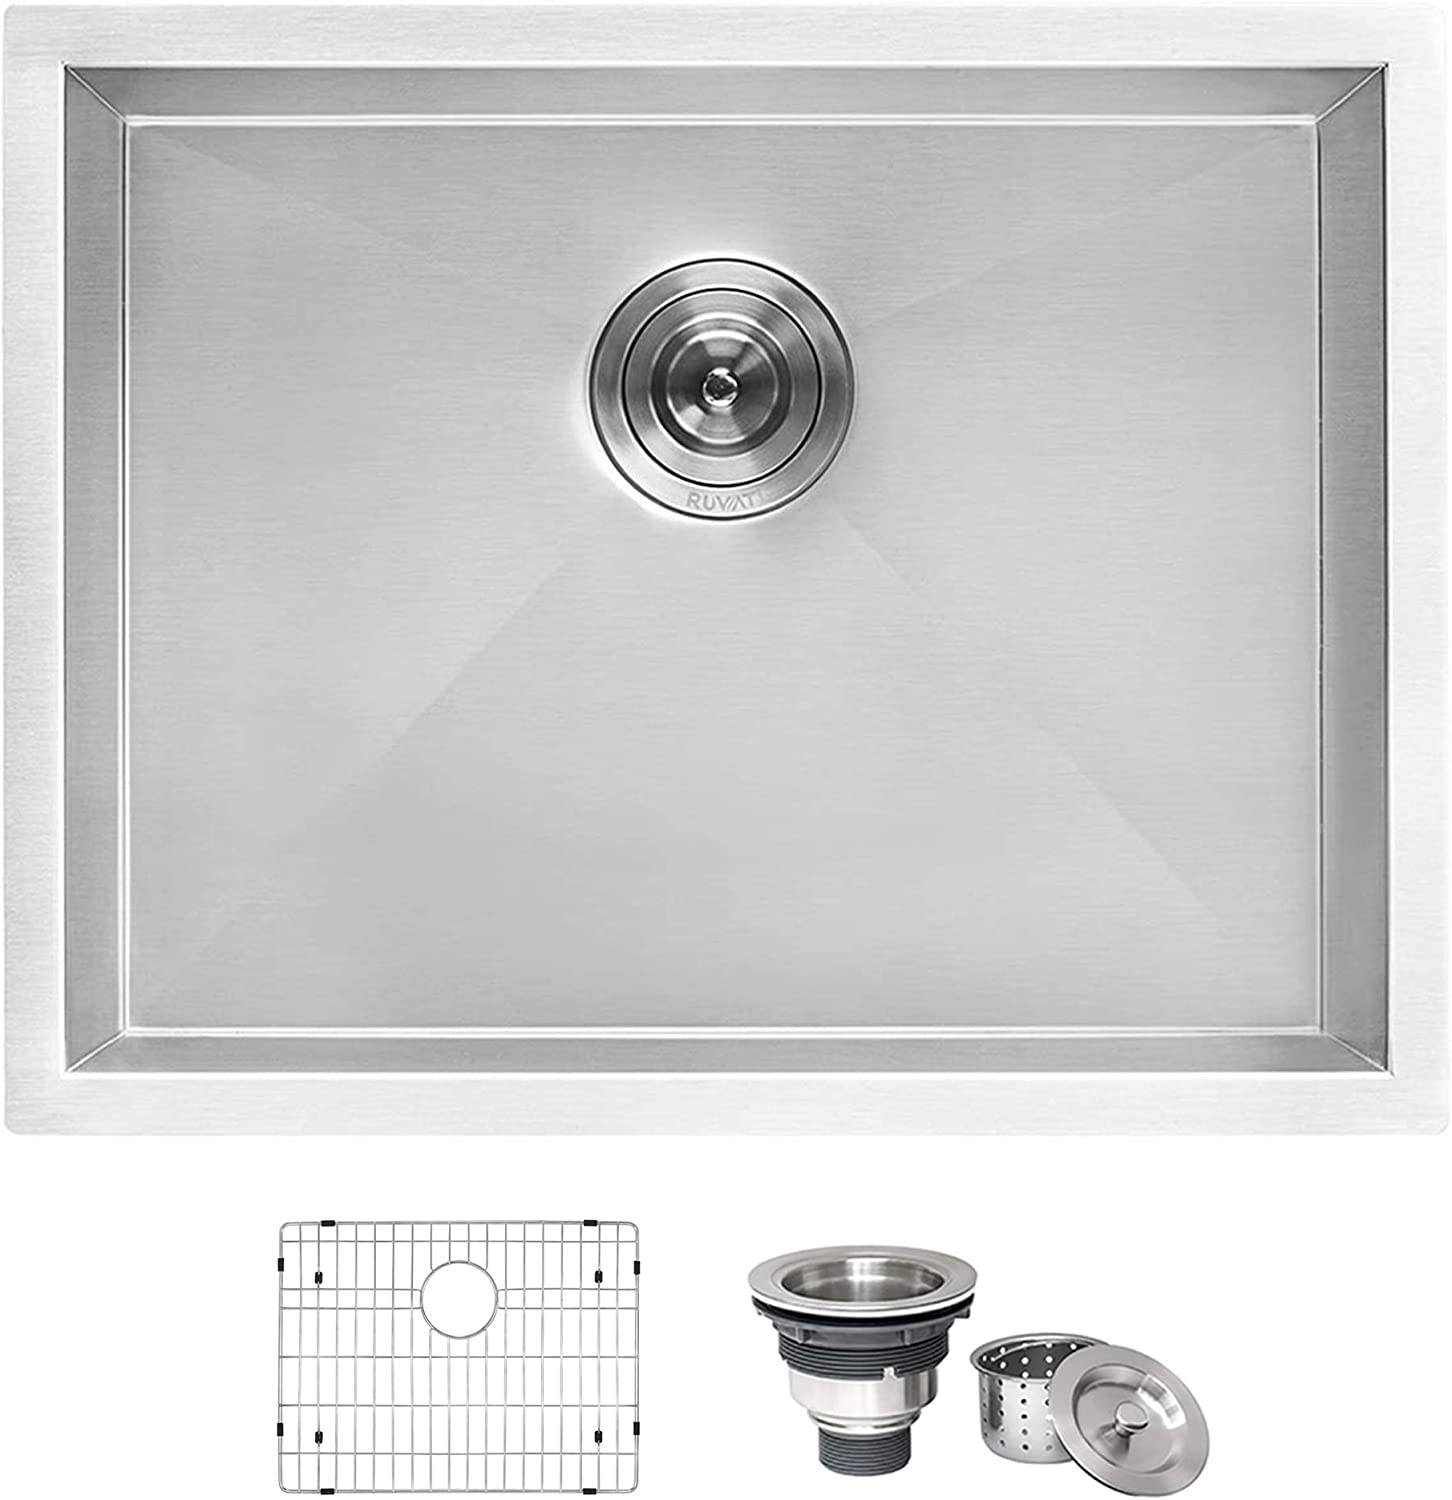 "Ruvati 24"" x 18"" x 13"" Deep Laundry Utility Sink Undermount 16 Gauge Stainless Steel - RVU6124"